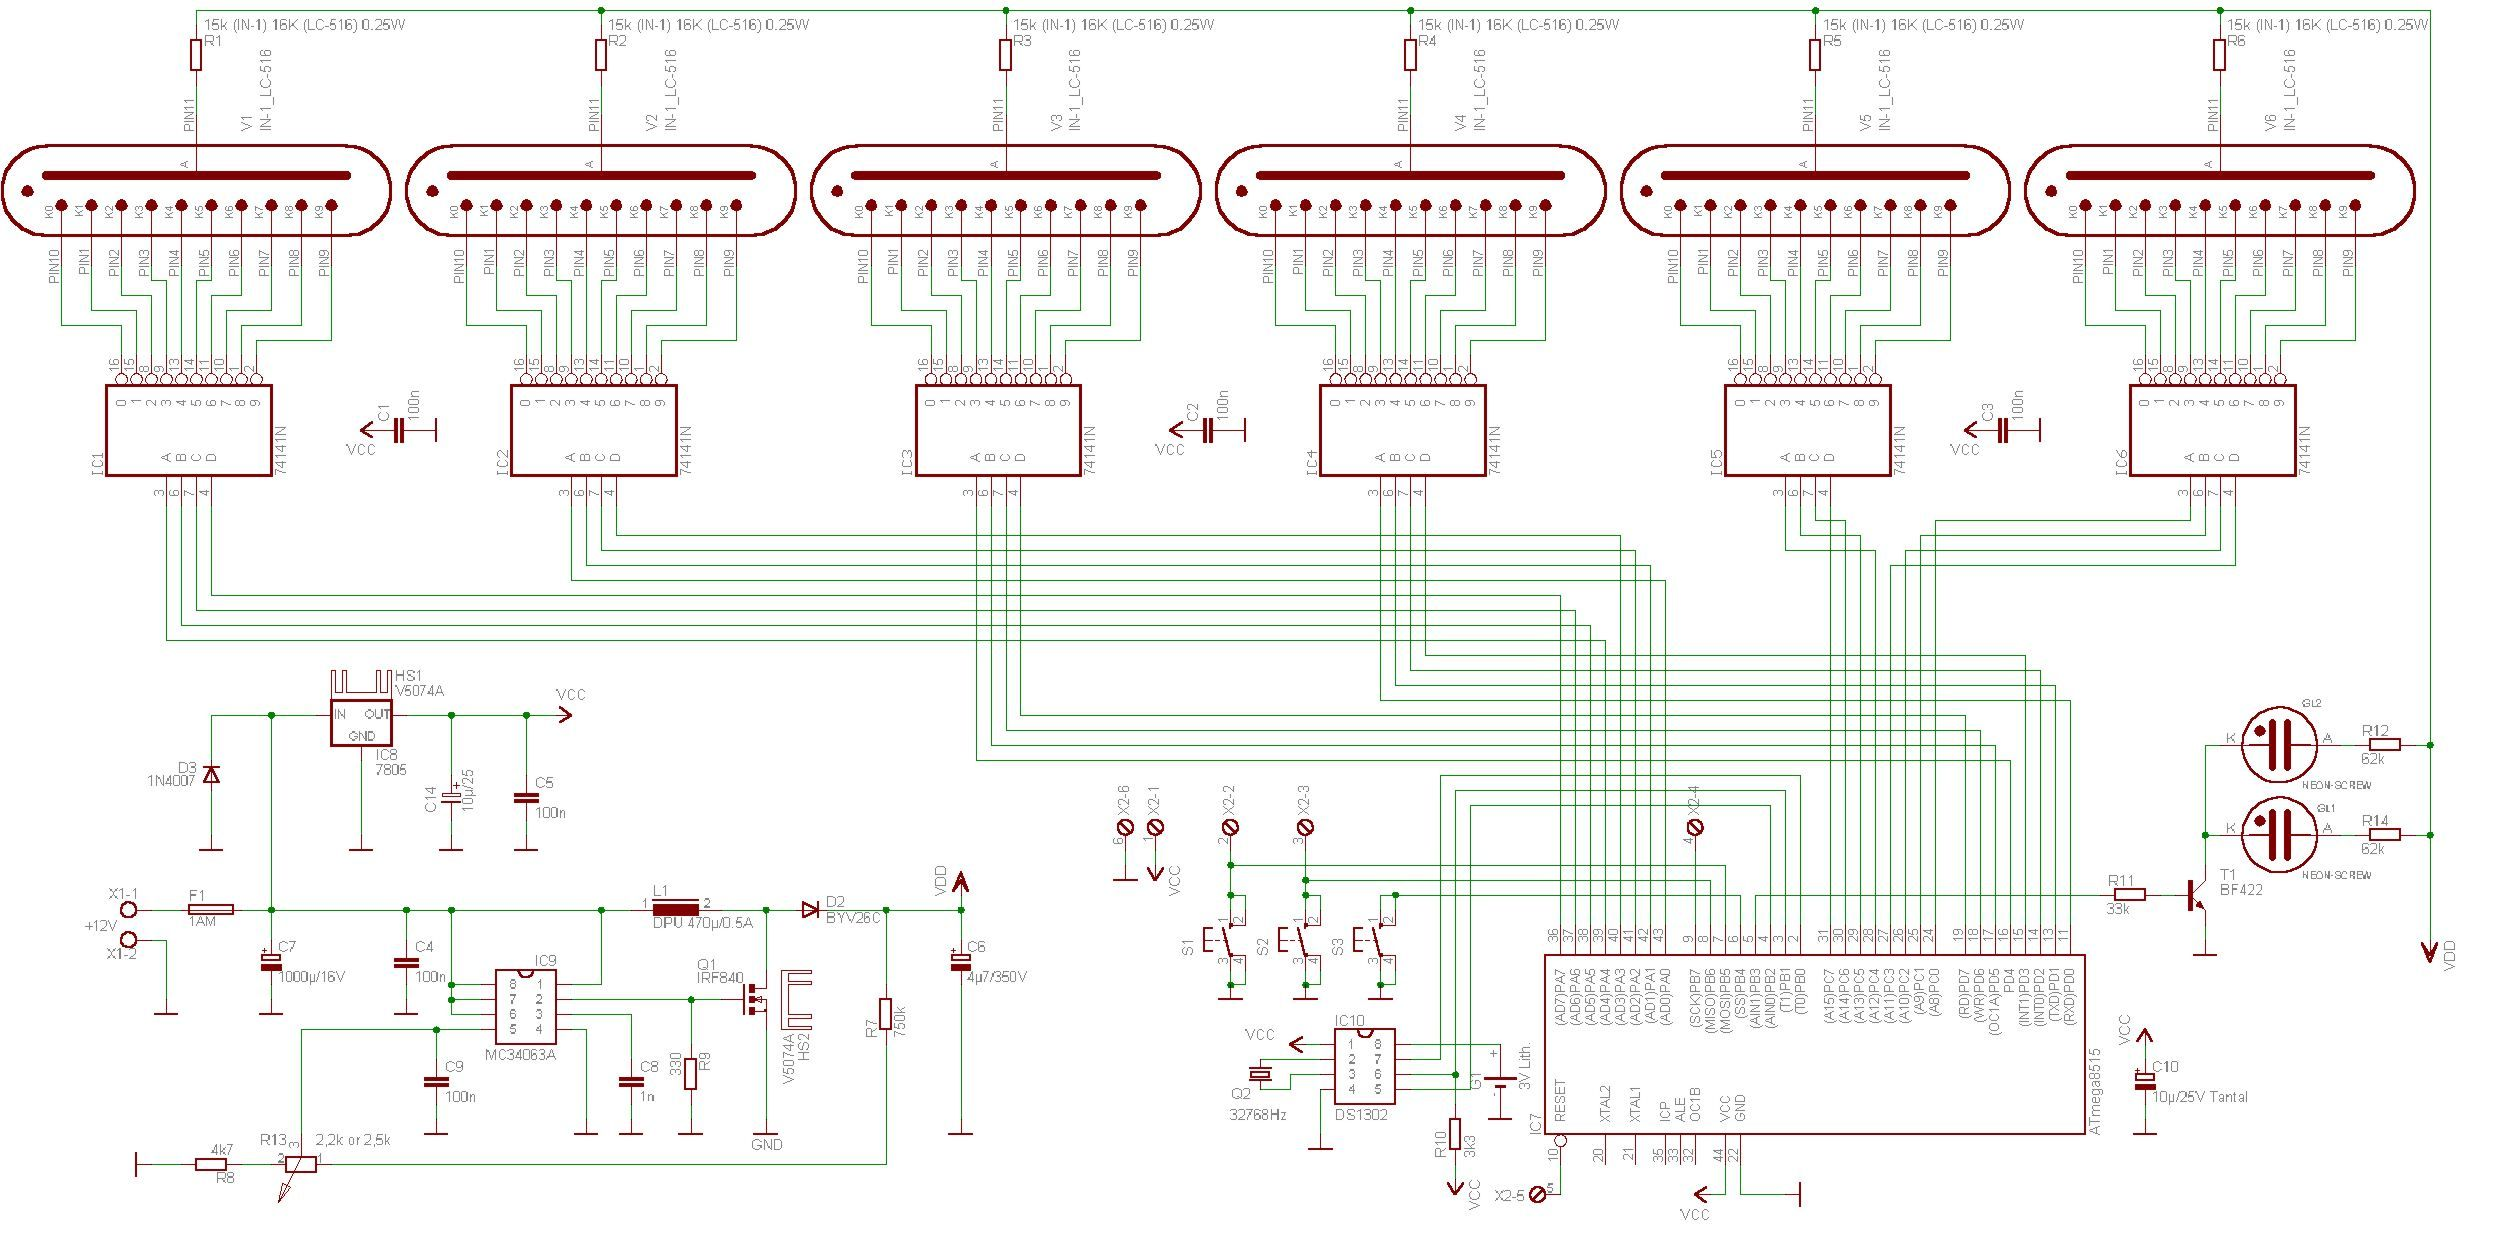 nixie tube clock schematic - Google Search | Nixie tube ... on ductwork layout, furnace layout, suspension layout, lighting layout, housing layout, bracket layout, exhaust layout, framing layout, foundation layout, relay layout, welding layout, controller layout, windows layout, drywall layout, transmission layout, operation layout, boston train station track layout, flooring layout, carpet layout,